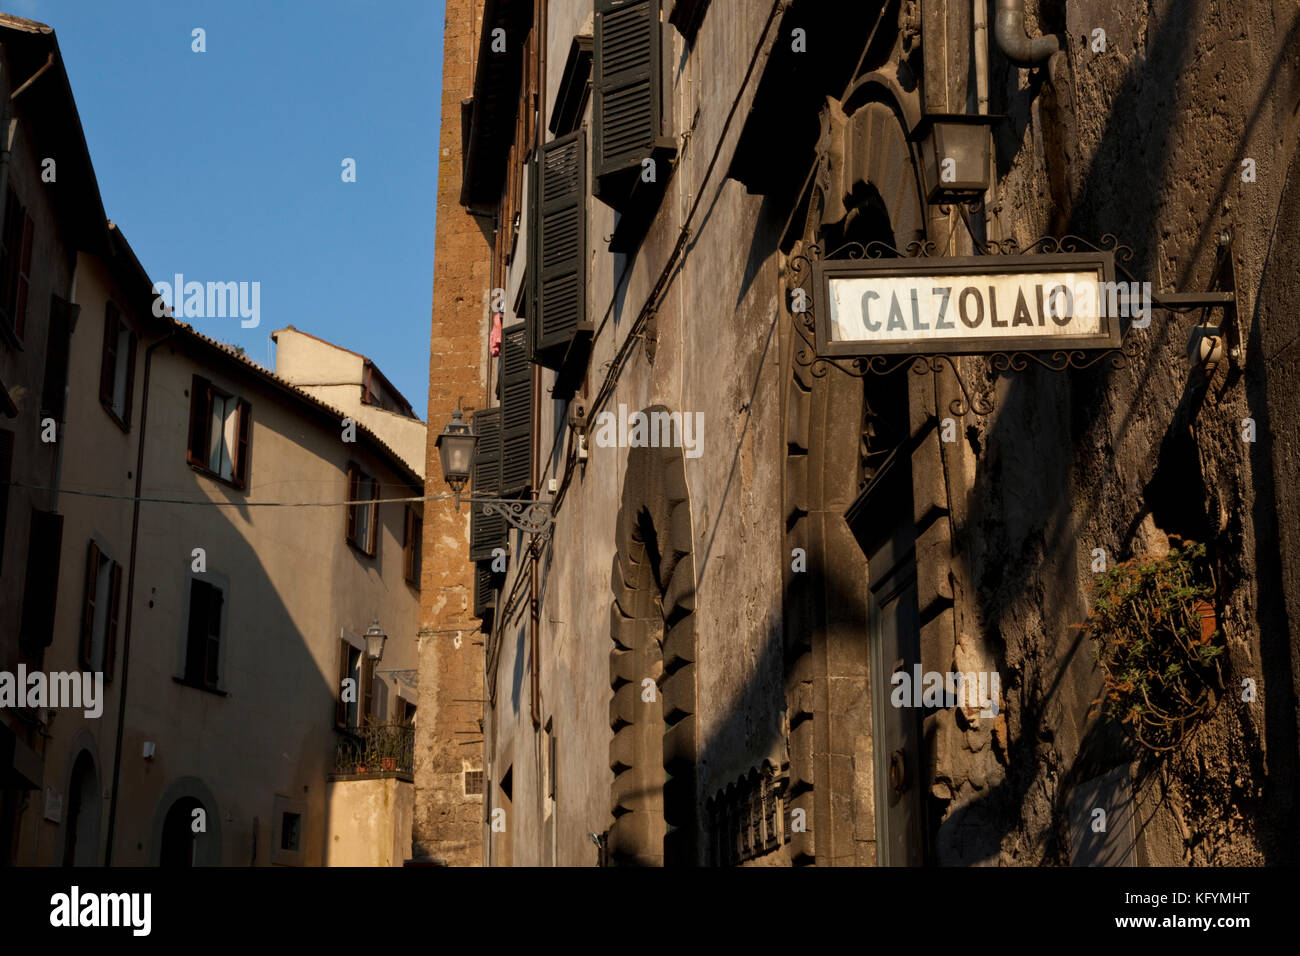 In the Medieval section of Orvieto, Italy a sign designates the shoemaker shop. - Stock Image